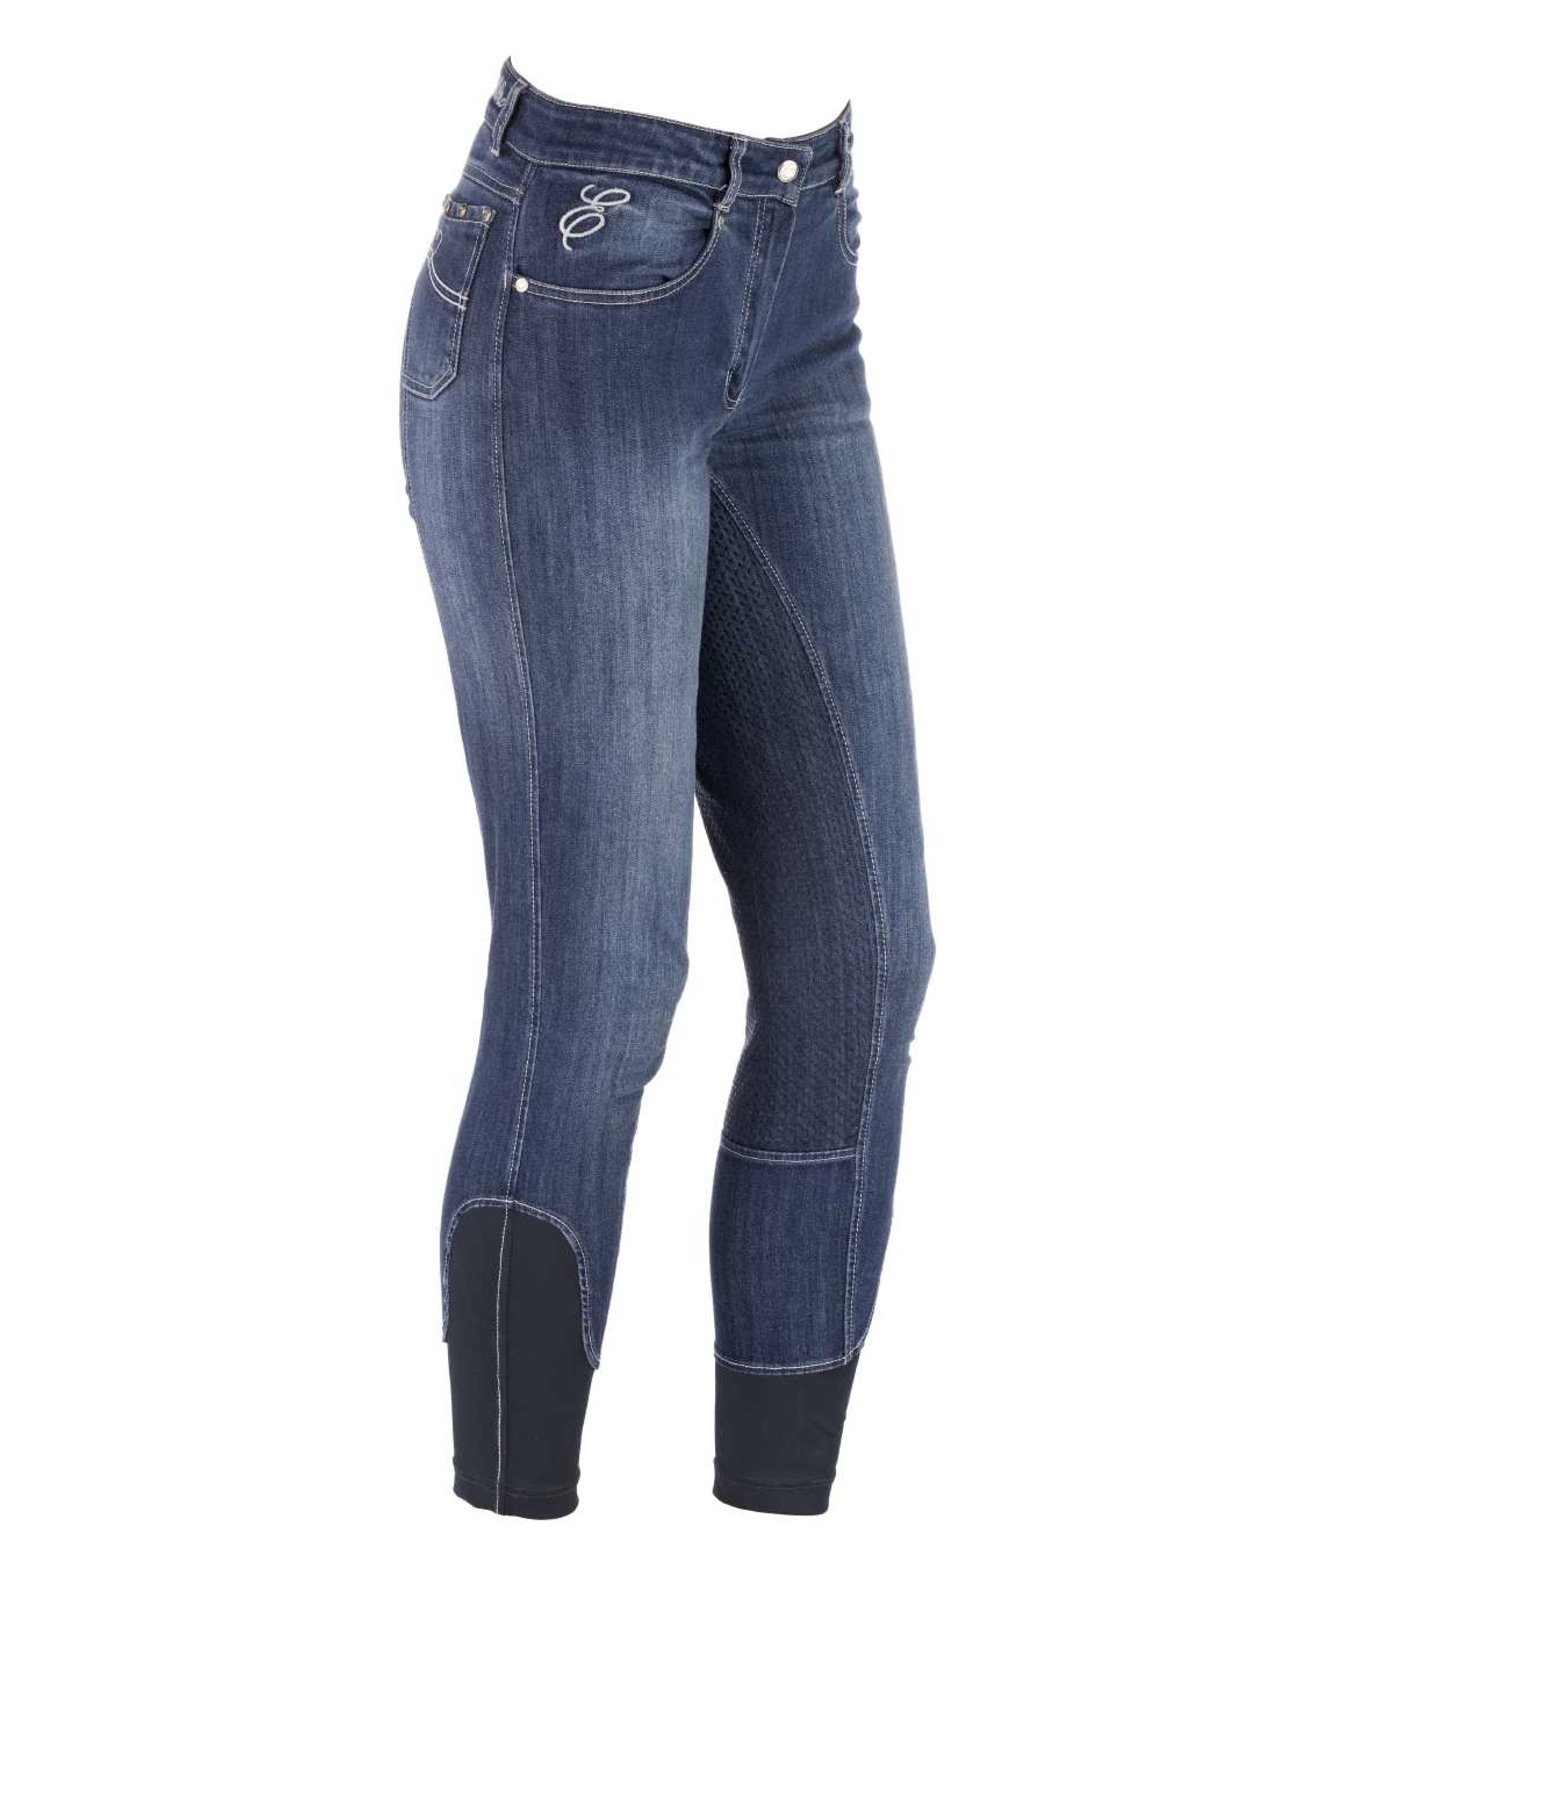 Denim Grip Full-Seat Breeches Karen